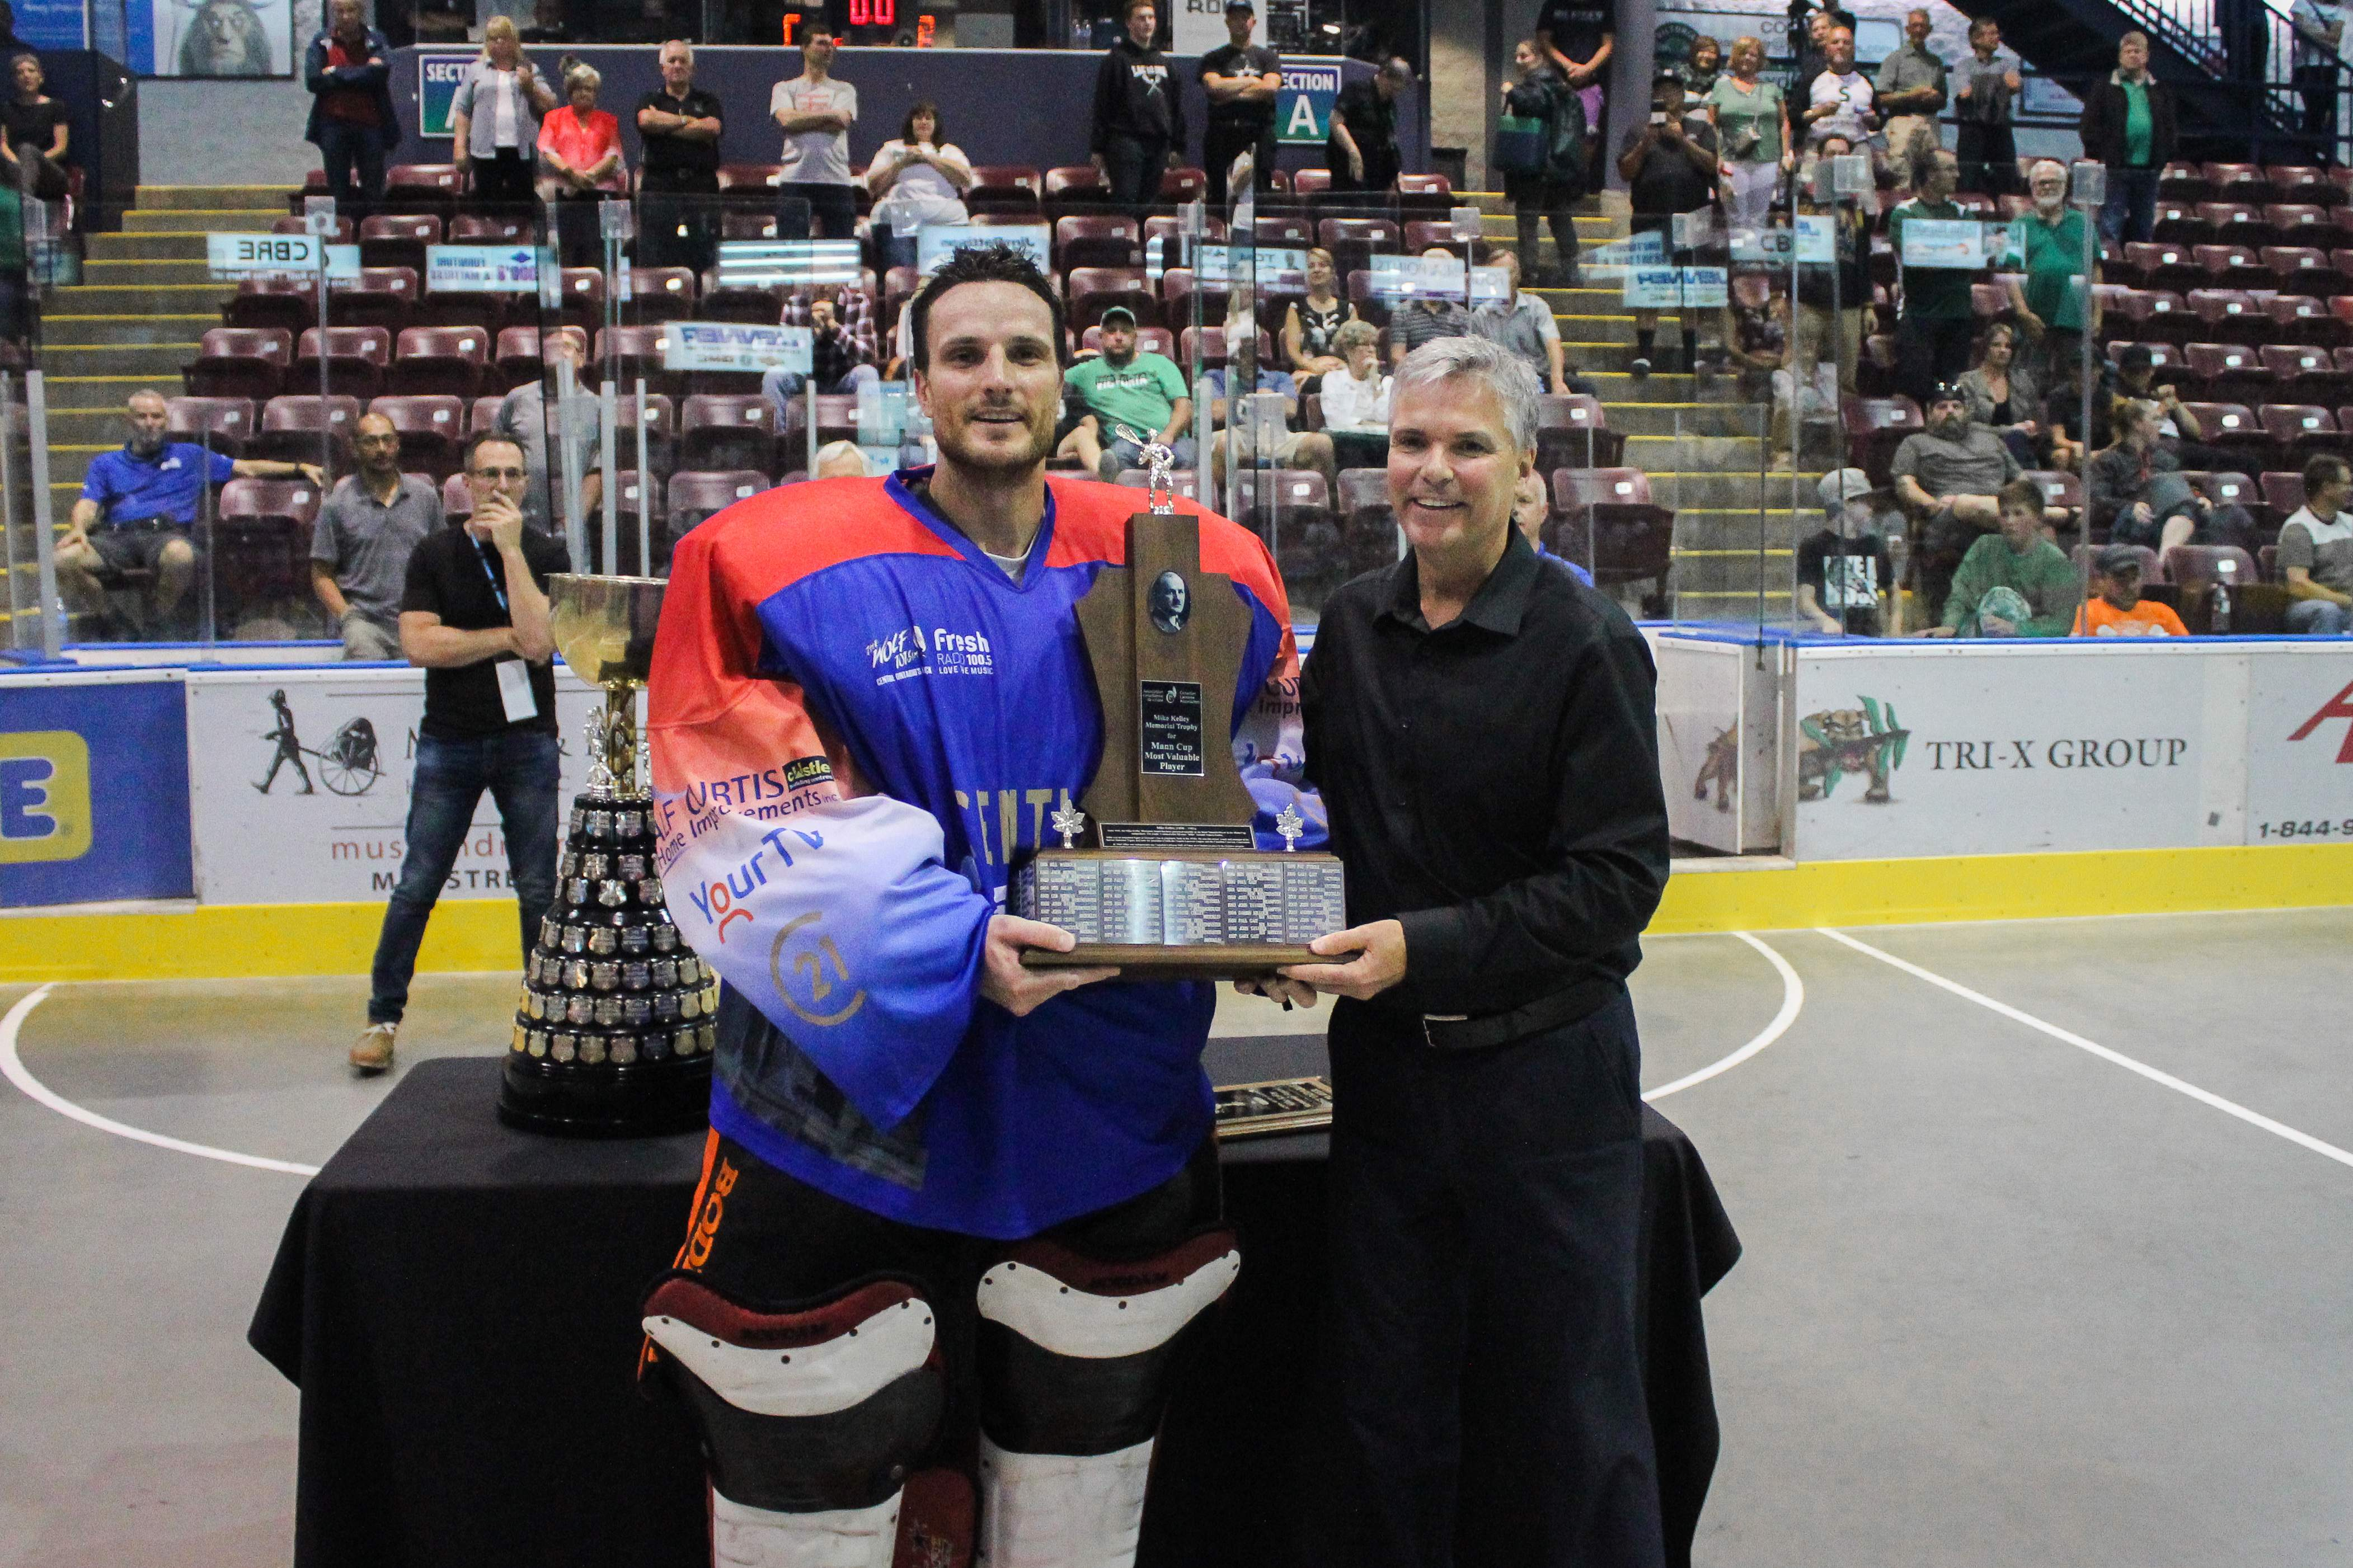 Lakers goaltender Micheal Poulin accepting the Mike Kelly Award. Photo by Nathanael Laranjeiras